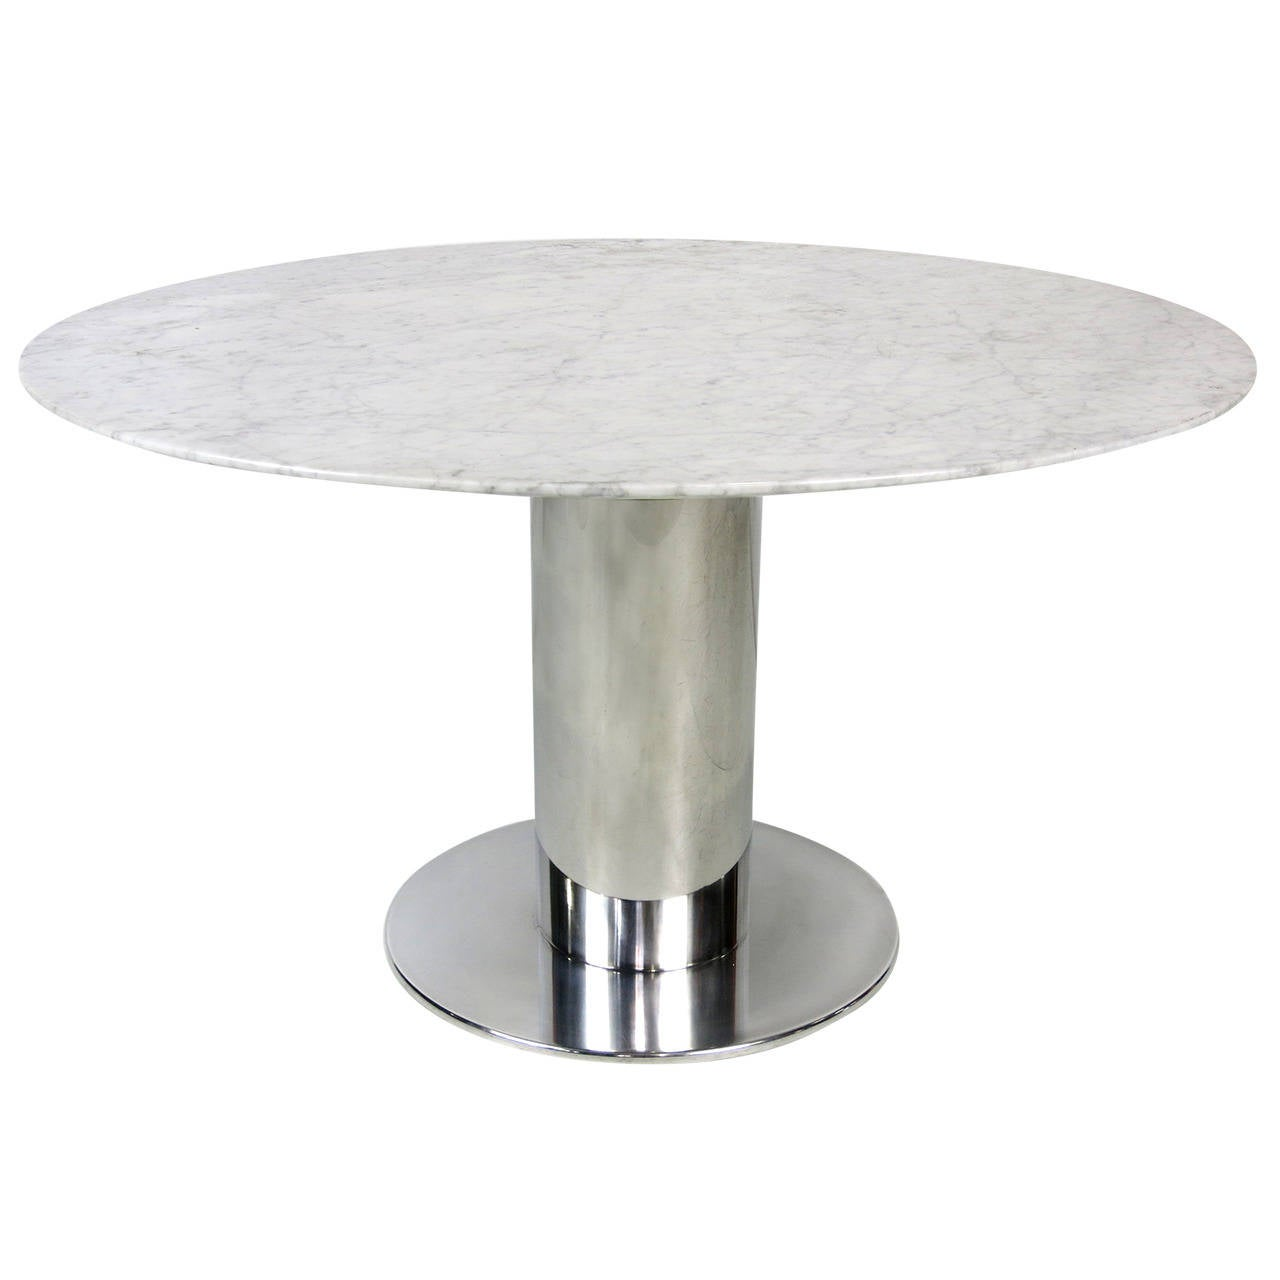 Polished Stainless Steel Dining Table Base at 1stdibs : 2588932l from 1stdibs.com size 1280 x 1280 jpeg 52kB